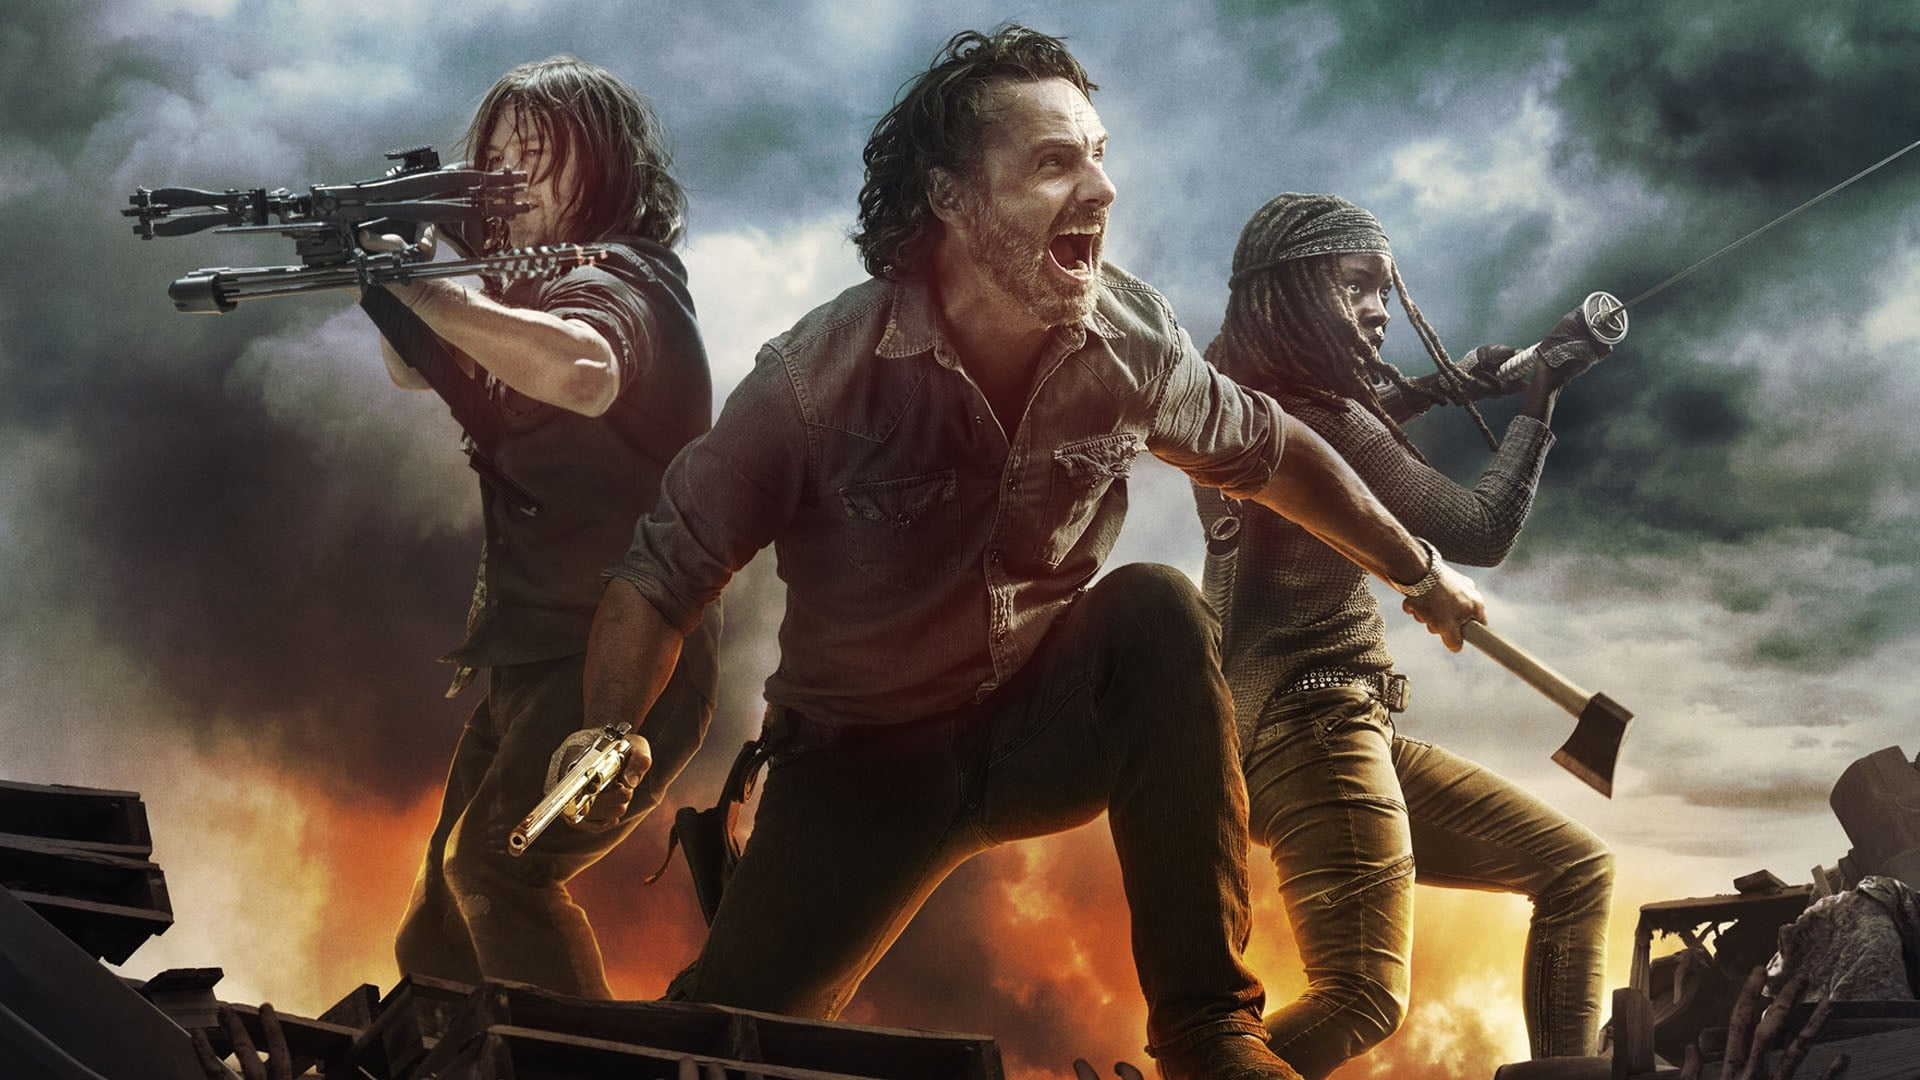 Tiende seizoen The Walking Dead keert in februari terug